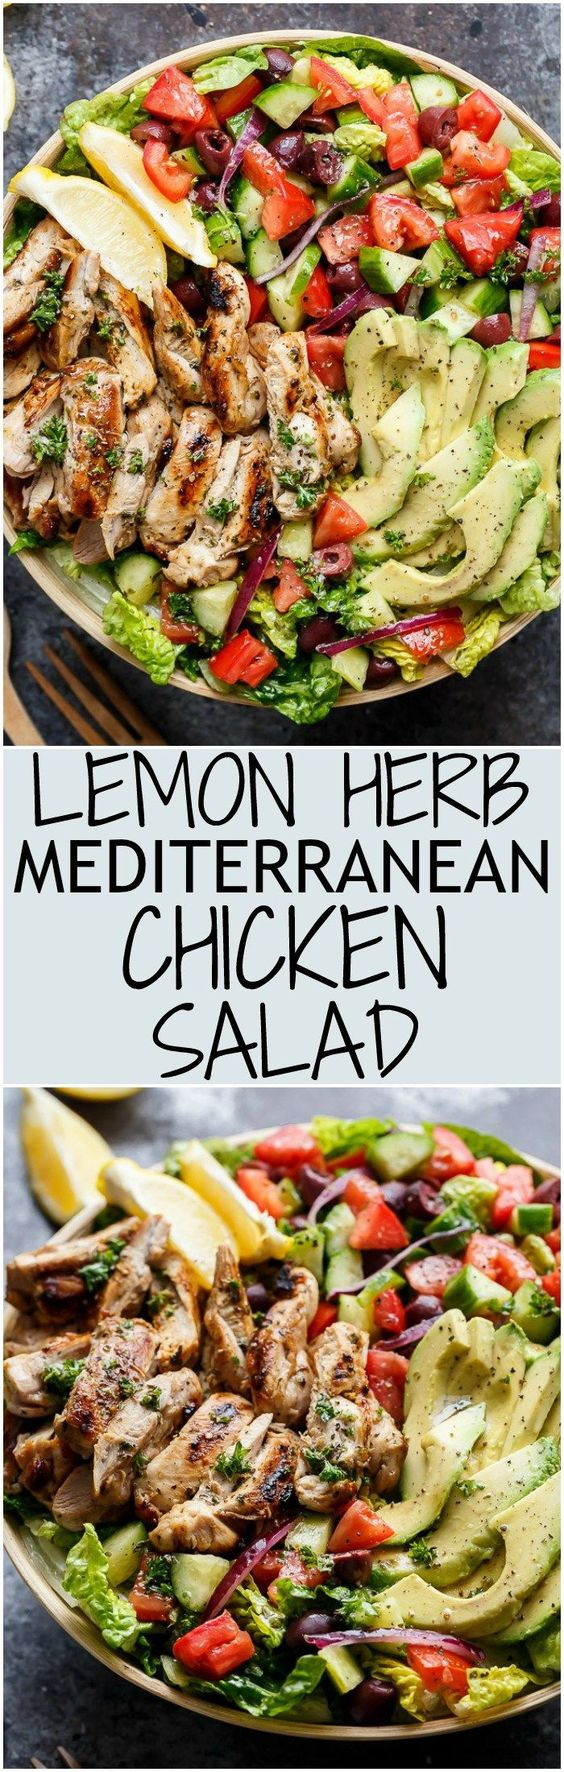 Healthy lemon herb Mediterranean chicken salad - healthy low carb meal for lunch/dinner/always